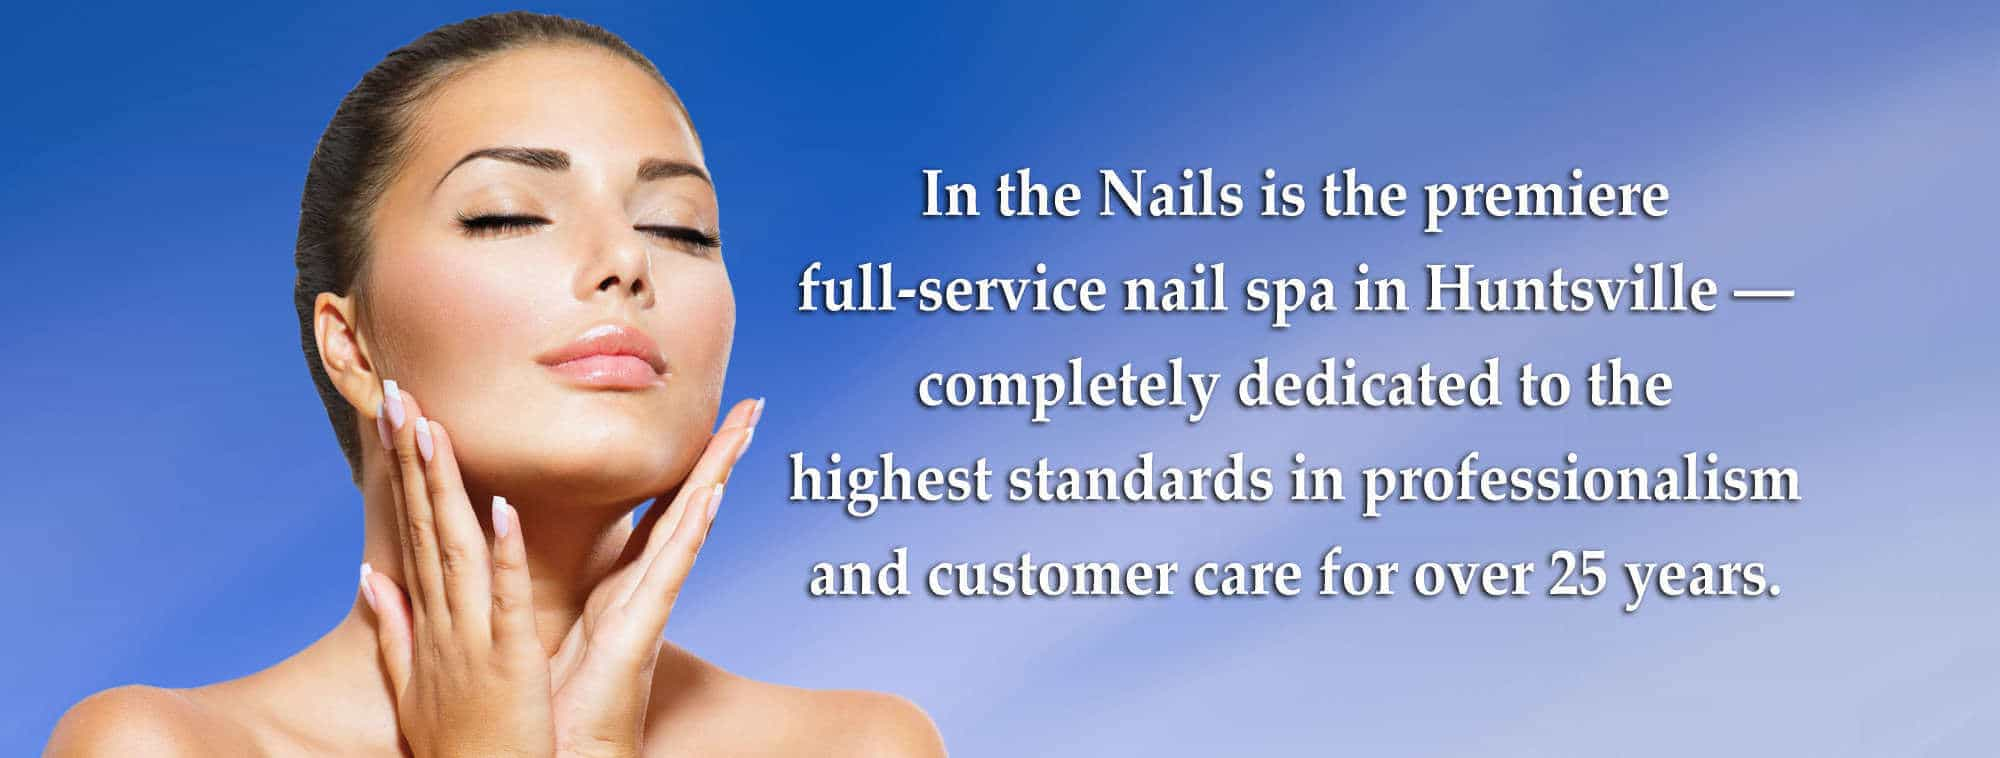 nail salon day spa huntsville